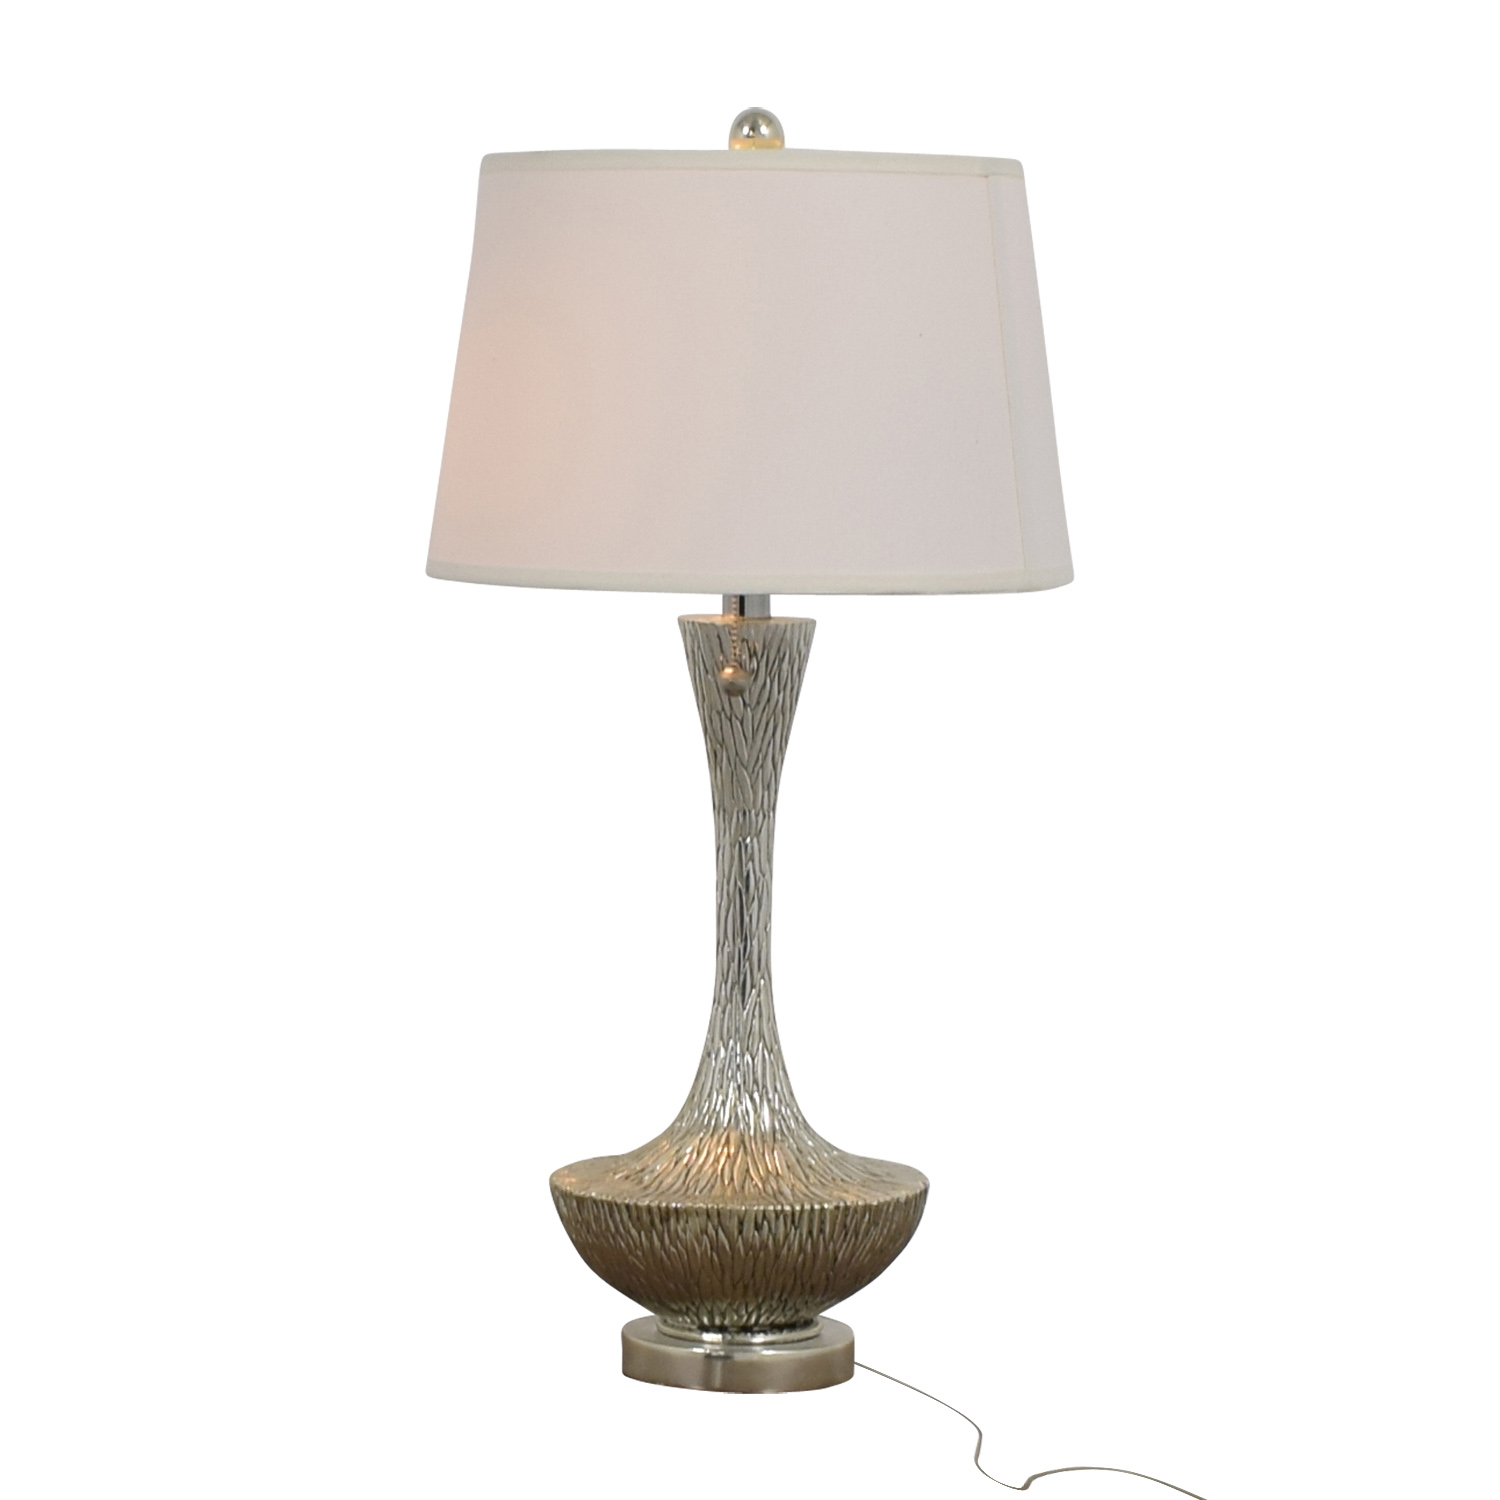 Embossed Silver Table Lamp used